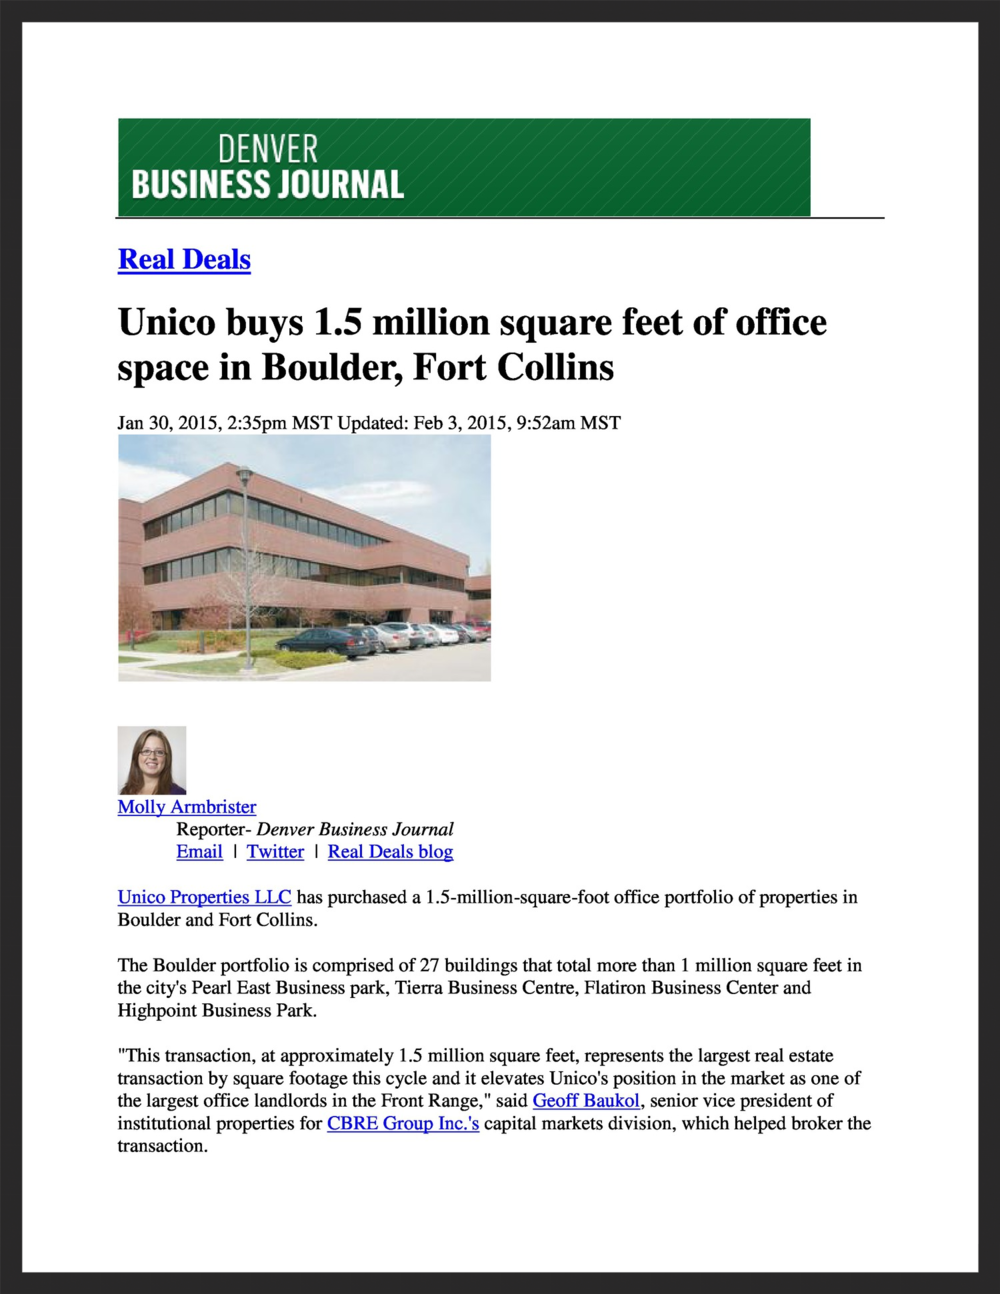 UNICO  Denver Business Journal  01.30.2015